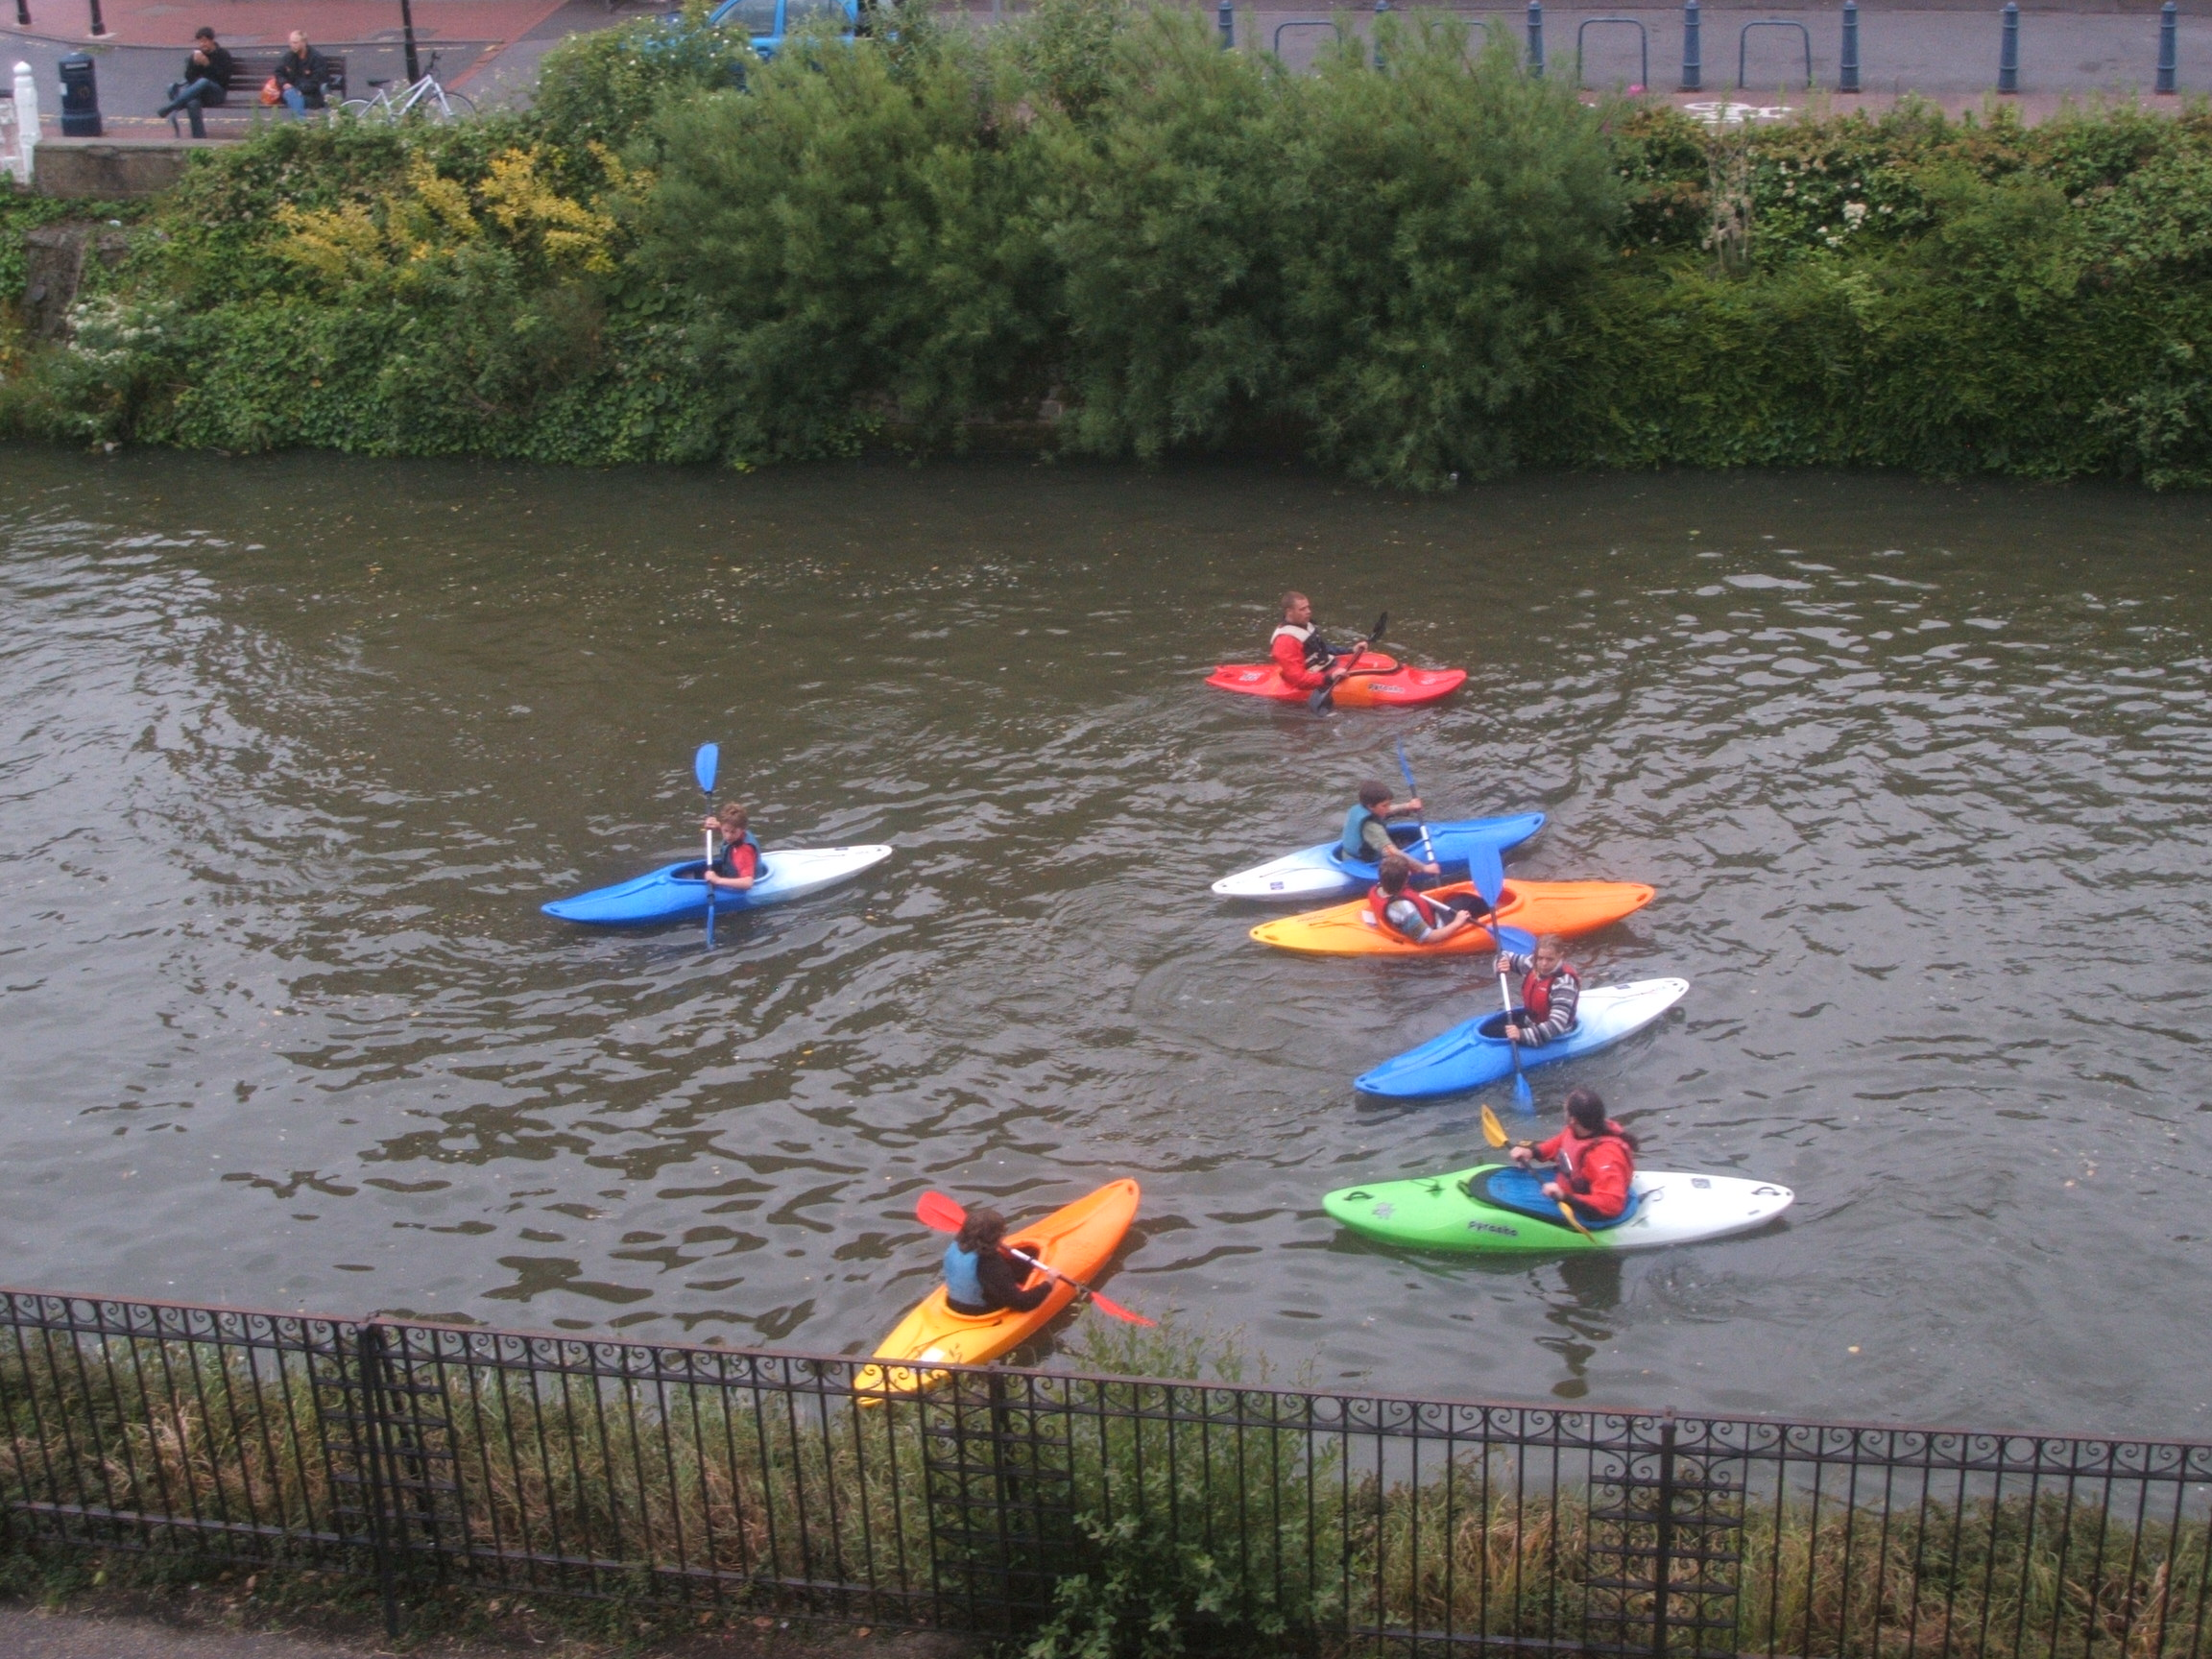 Canoing in Tonbridge